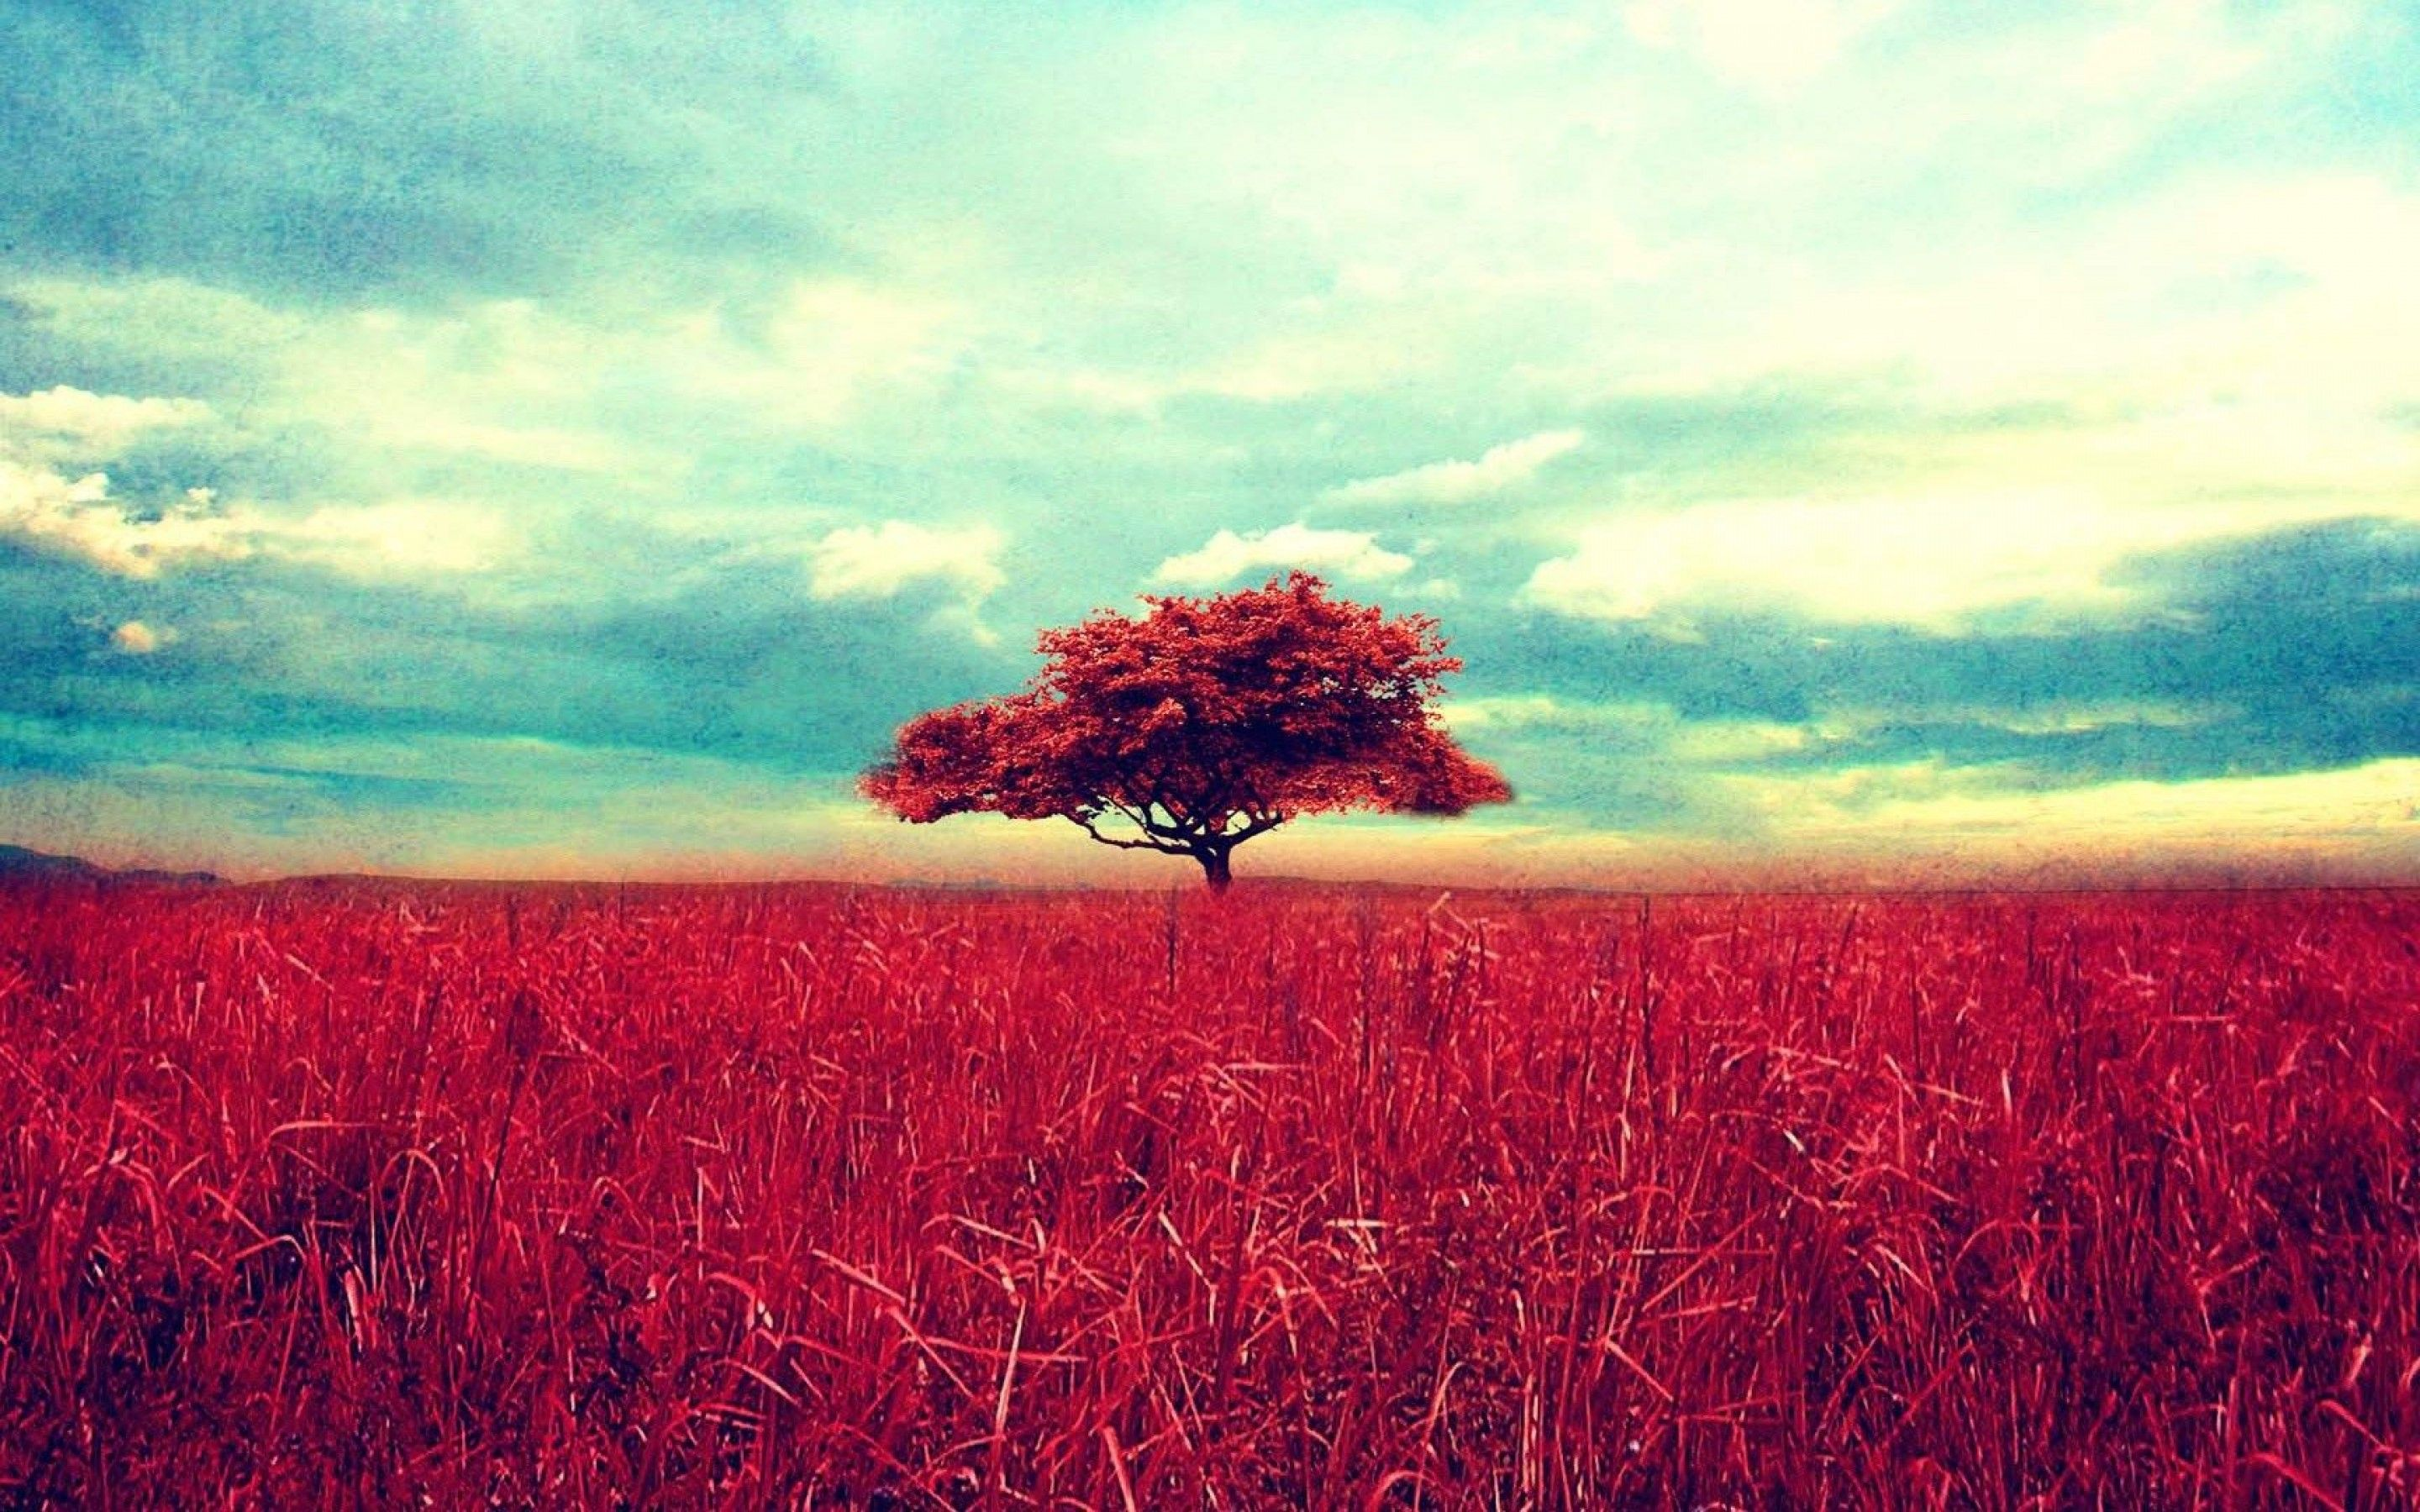 Retro Red Tree And A Beautiful Wheat Field Landscape Wallpaper Nature Wallpaper Vintage Landscape